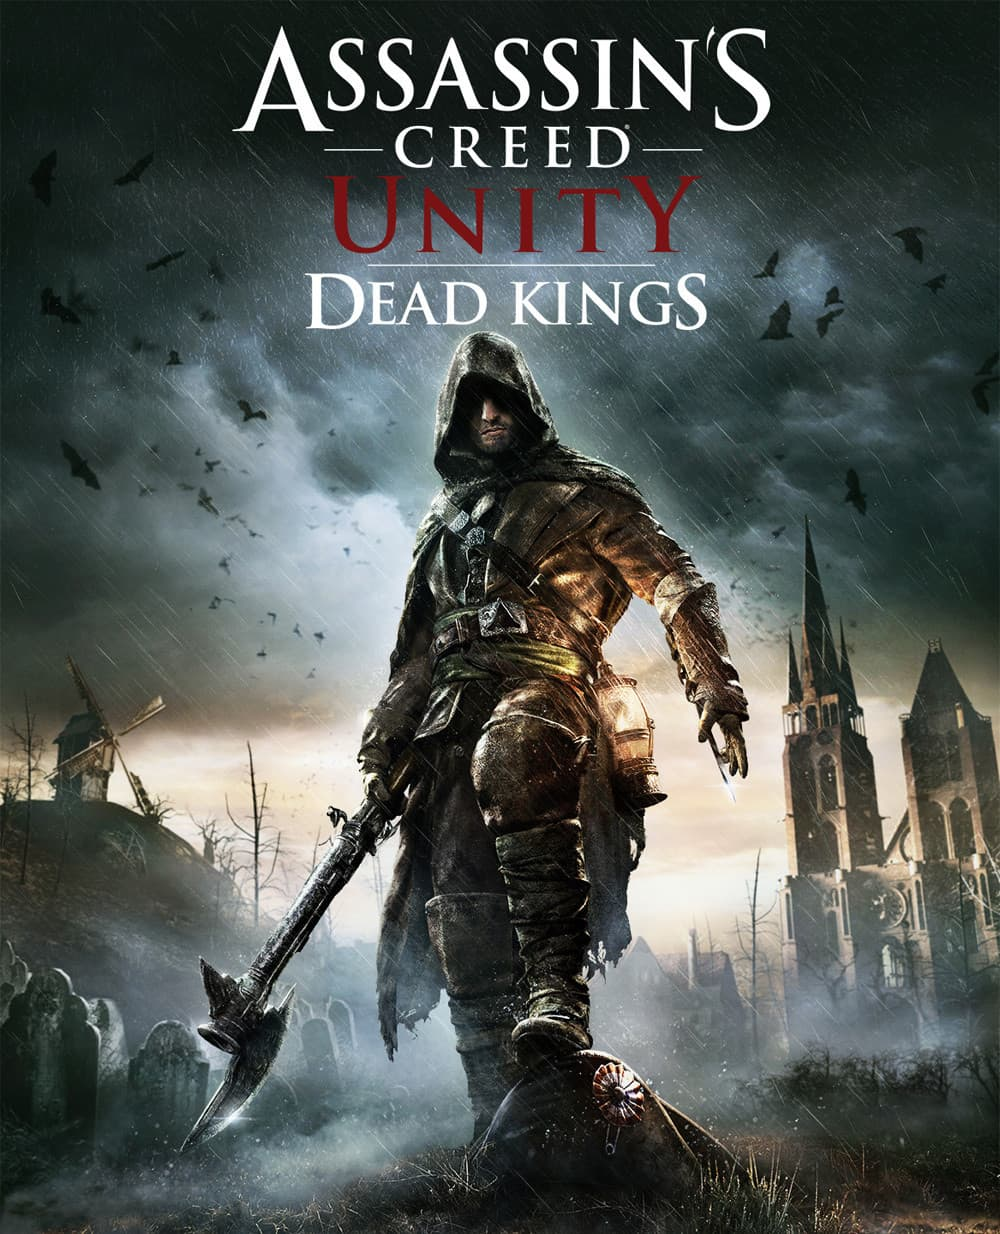 Jaquette Assassin's Creed Unity : Dead Kings